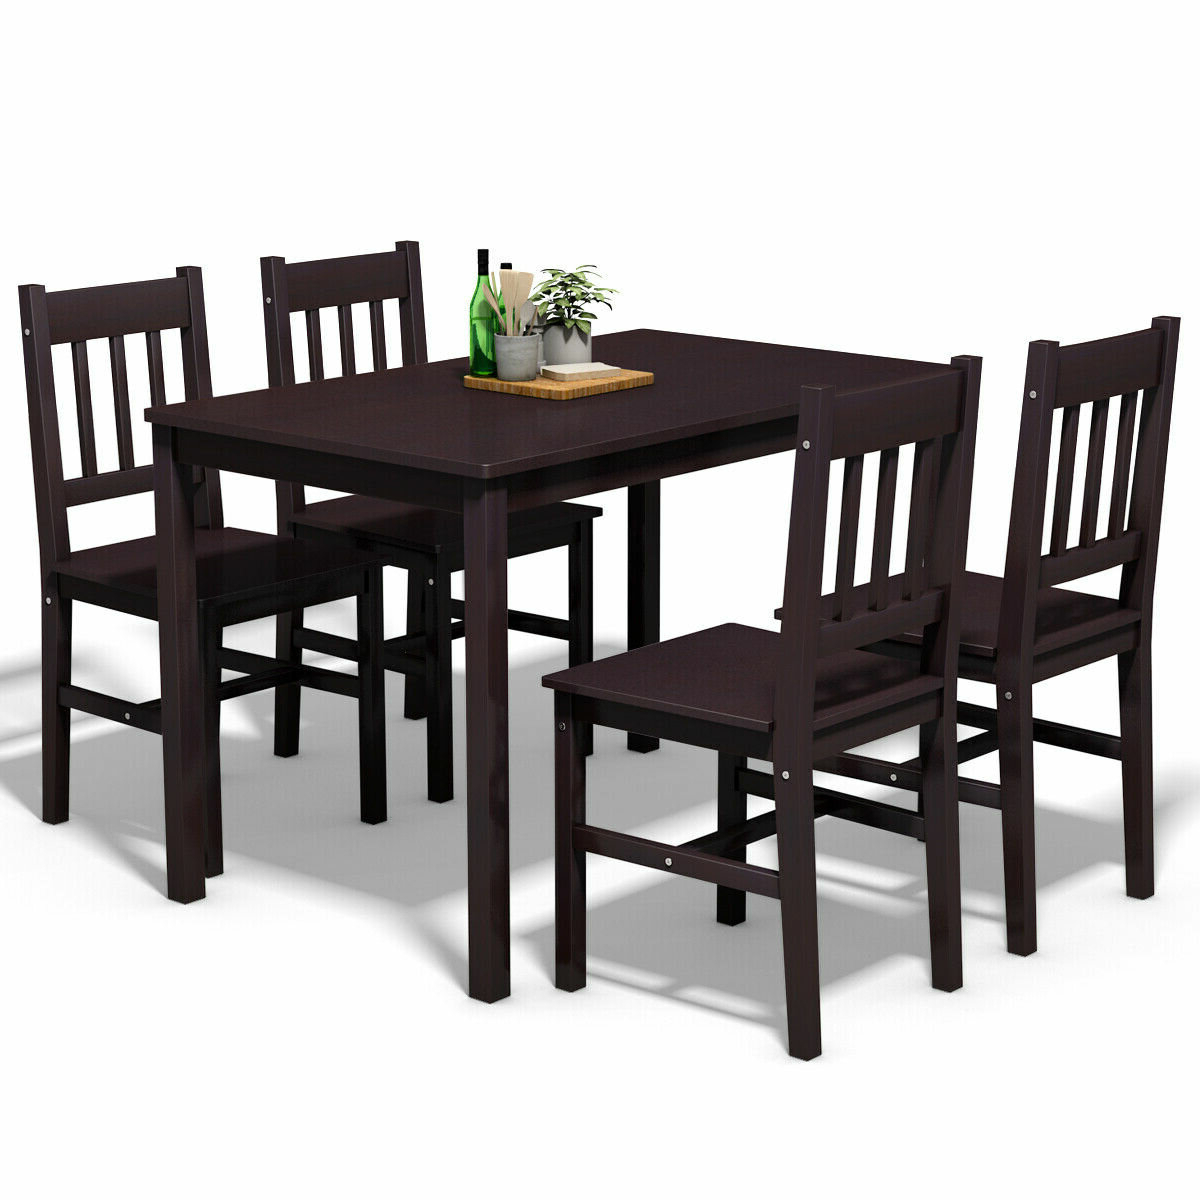 Miskell 5 Piece Dining Sets In Current Sundberg 5 Piece Solid Wood Dining Set (View 8 of 20)